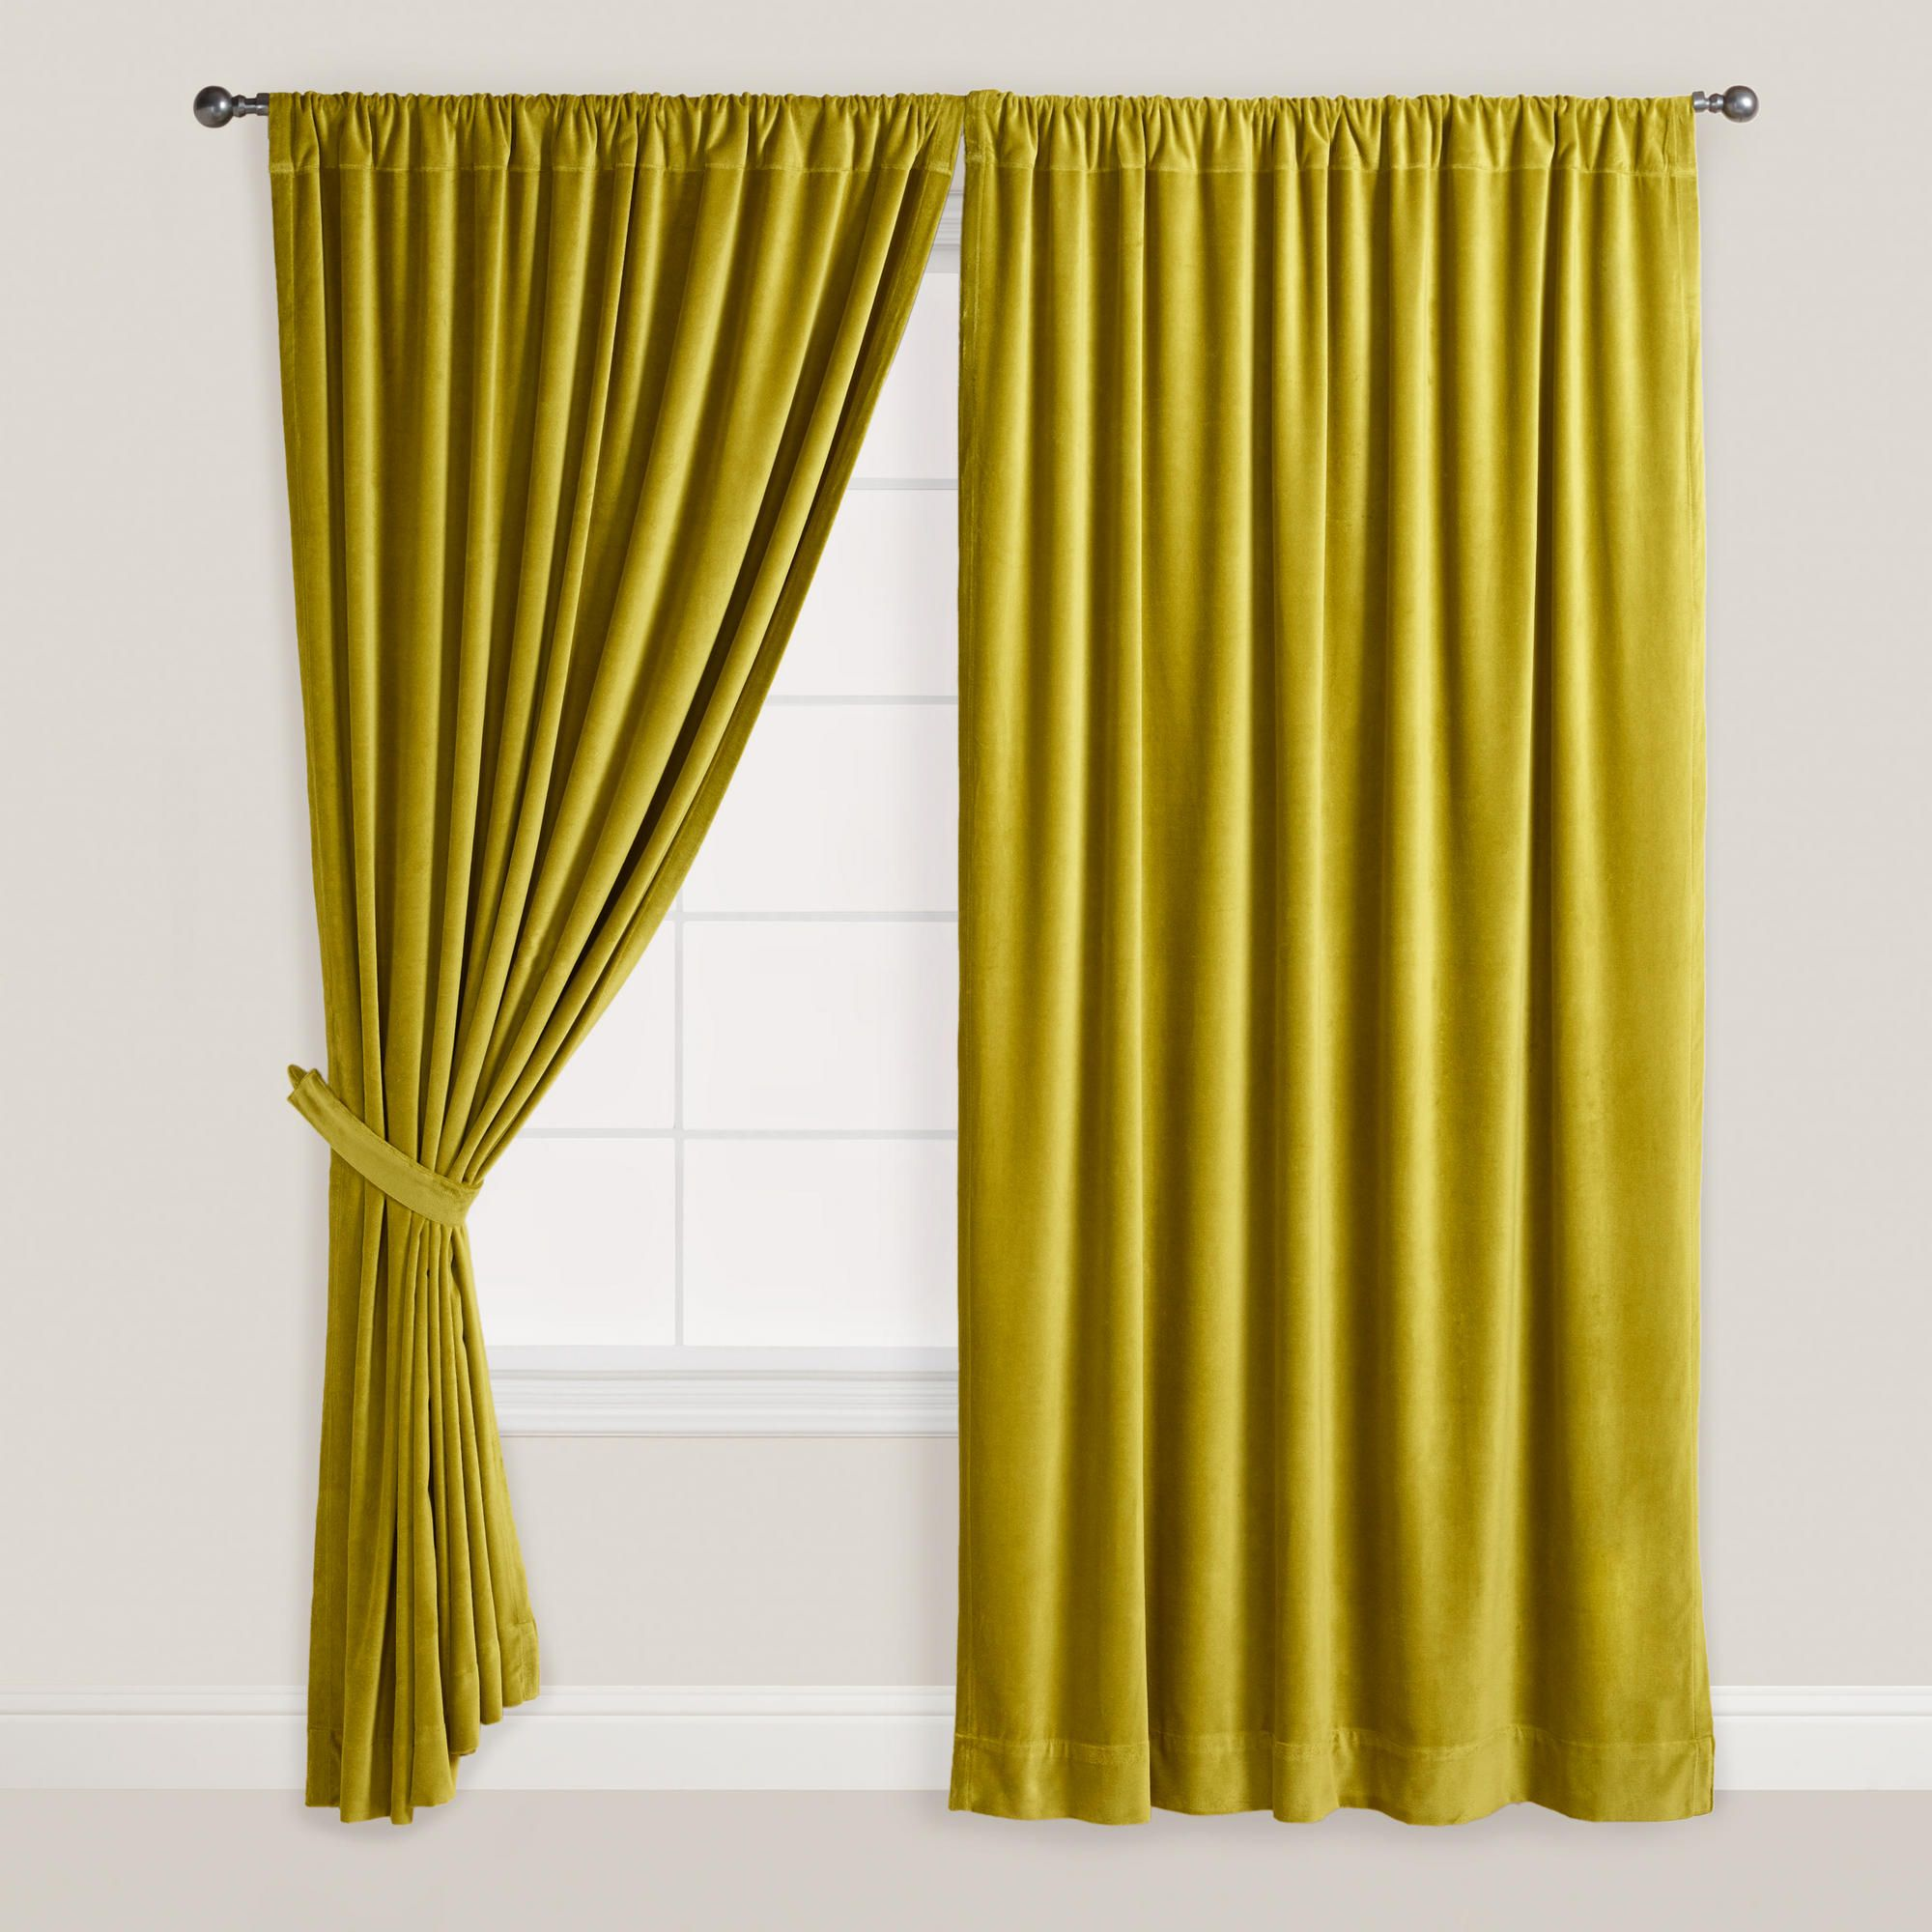 Green bedroom curtains - Green Velvet Oasis Curtain World Market Bedroom